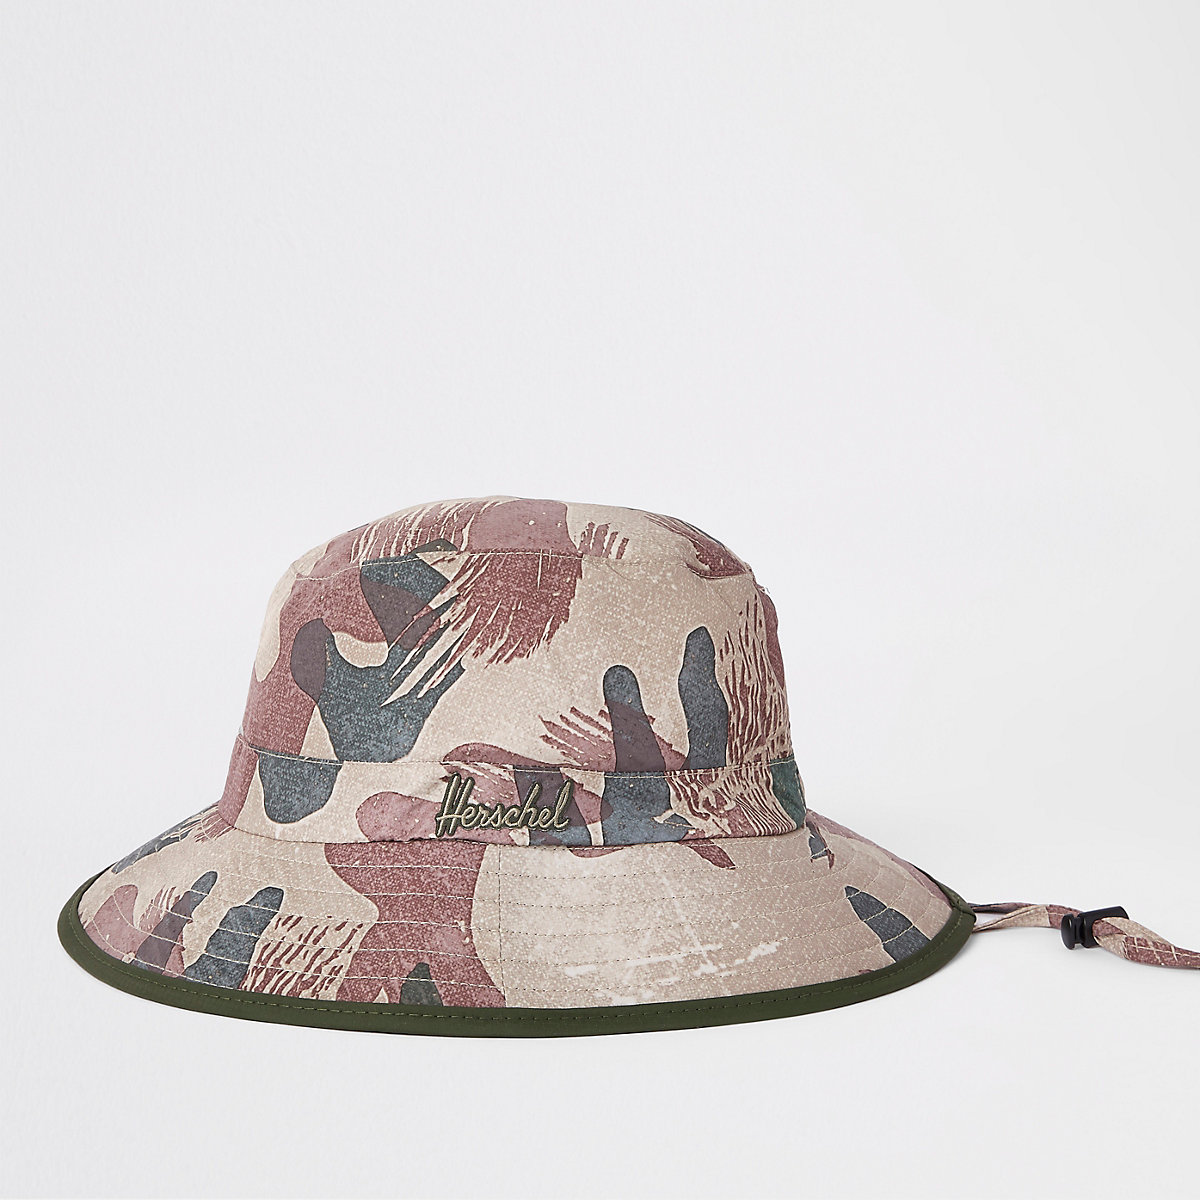 Herschel green Creek camo bucket hat - Hats   Caps - Accessories - men 346fd63688